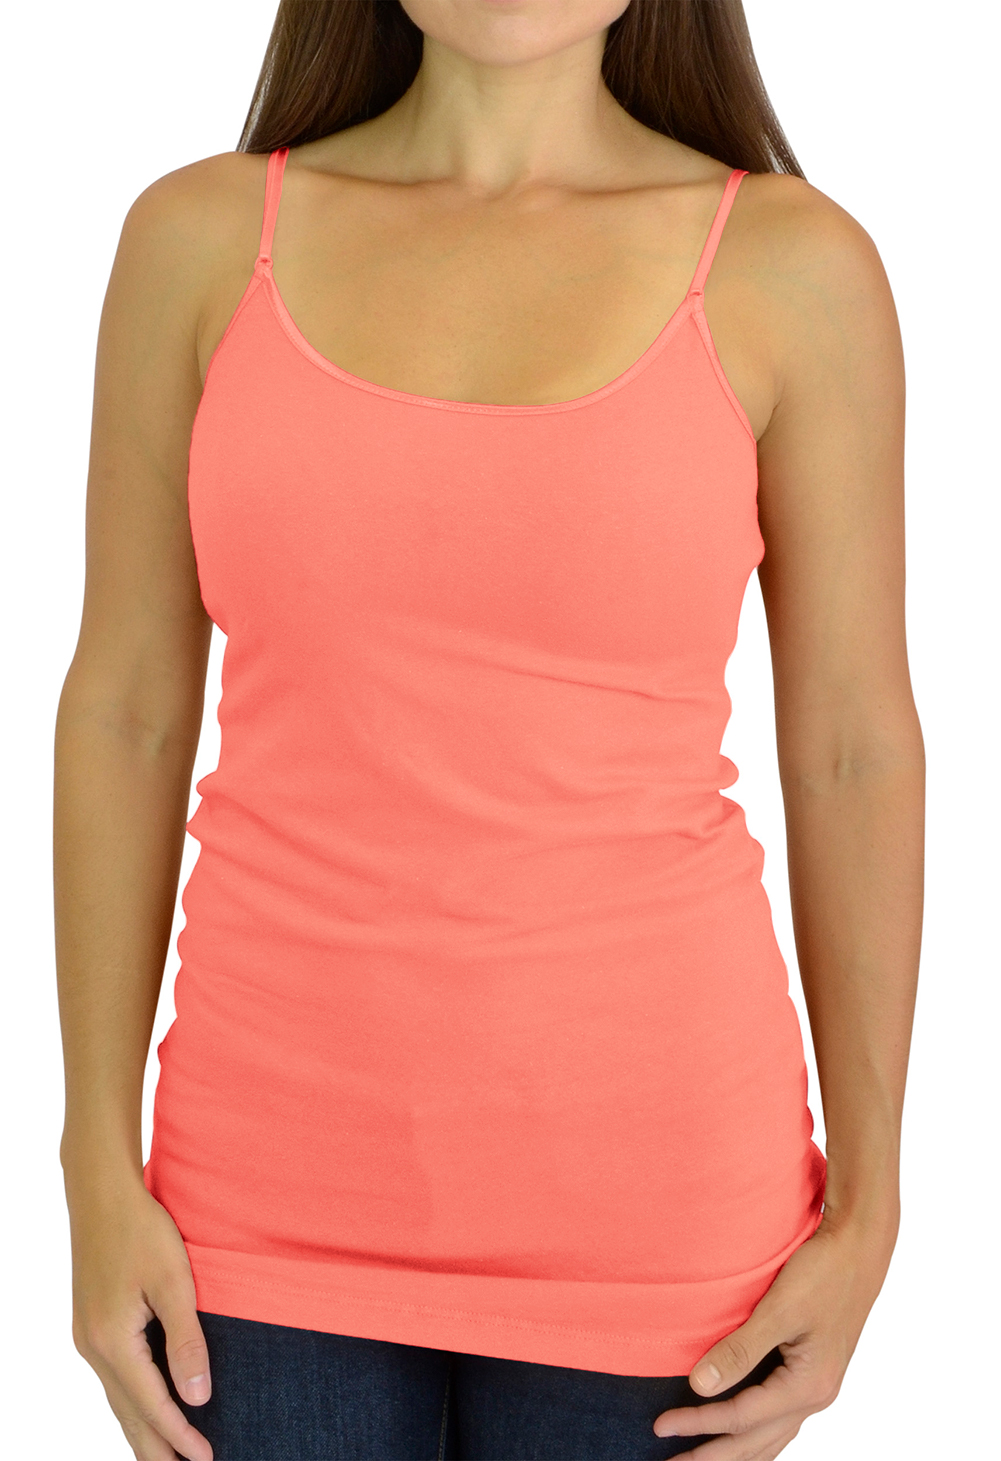 Belle Donne Cami Camisole Adjustable Spaghetti Strap Tank Top for Women and Girls by Deep Peach Medium